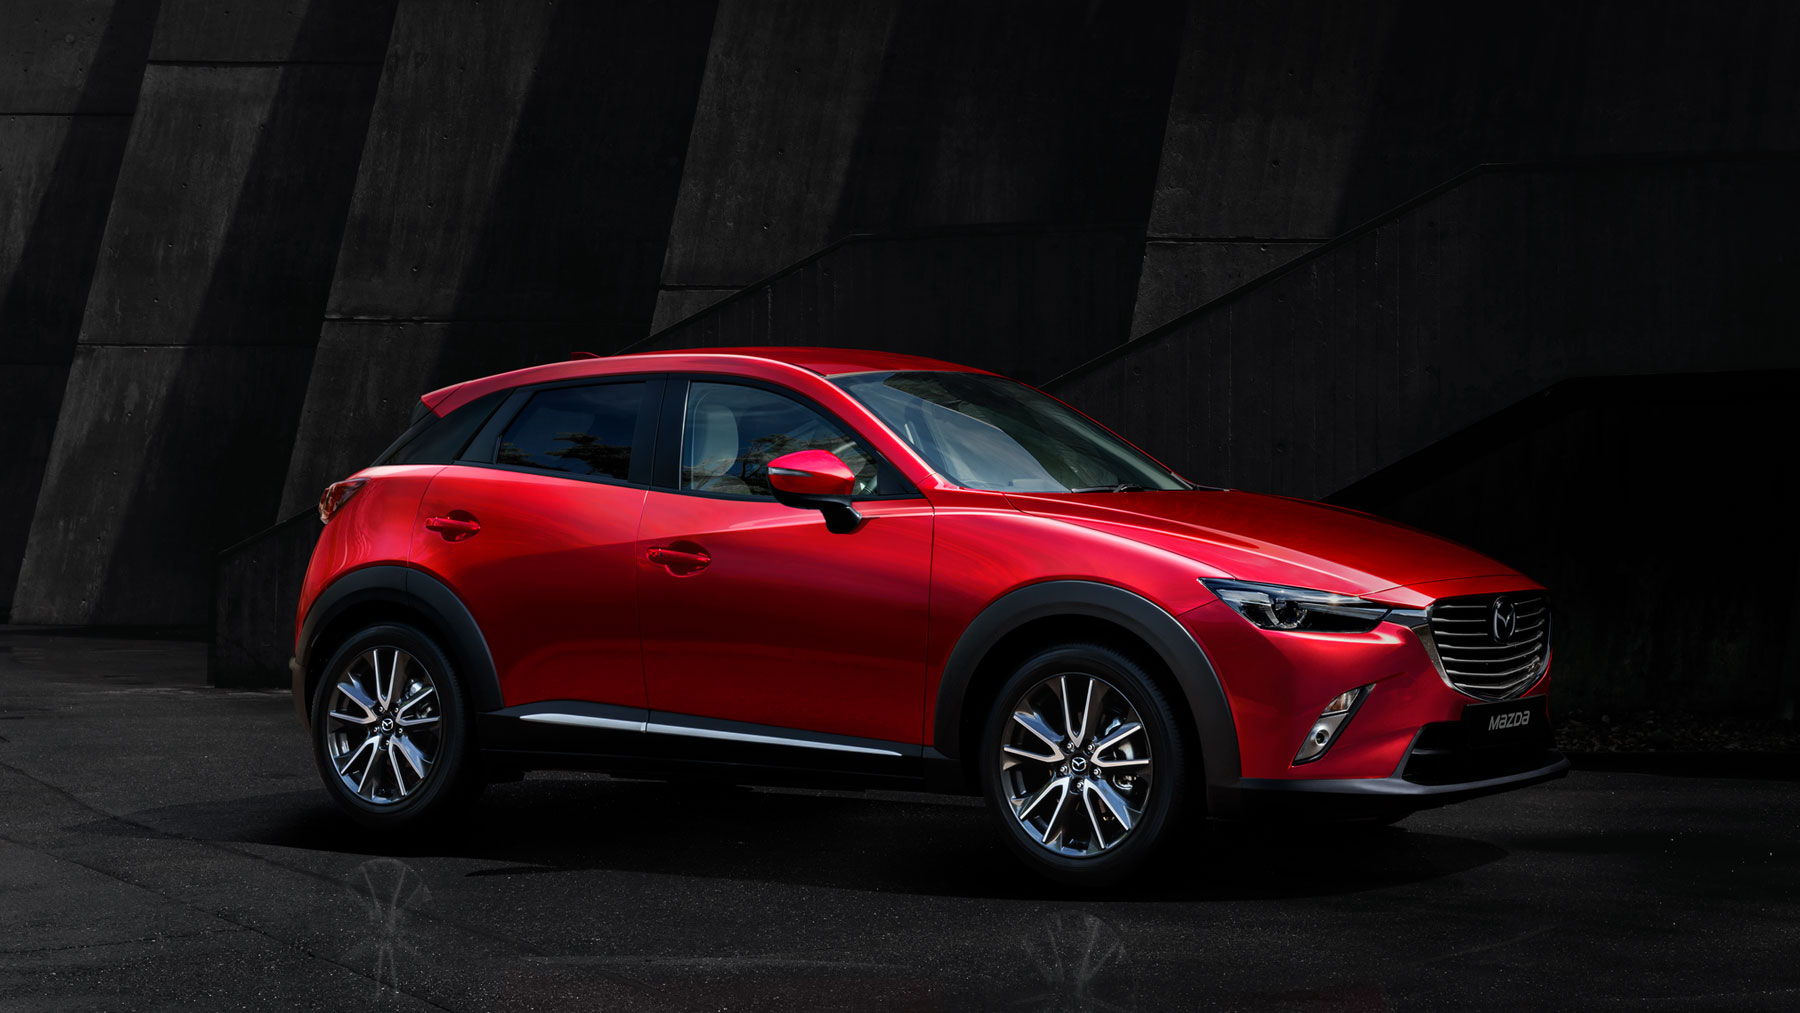 2018 Mazda CX-3 Financing in Elk Grove, CA